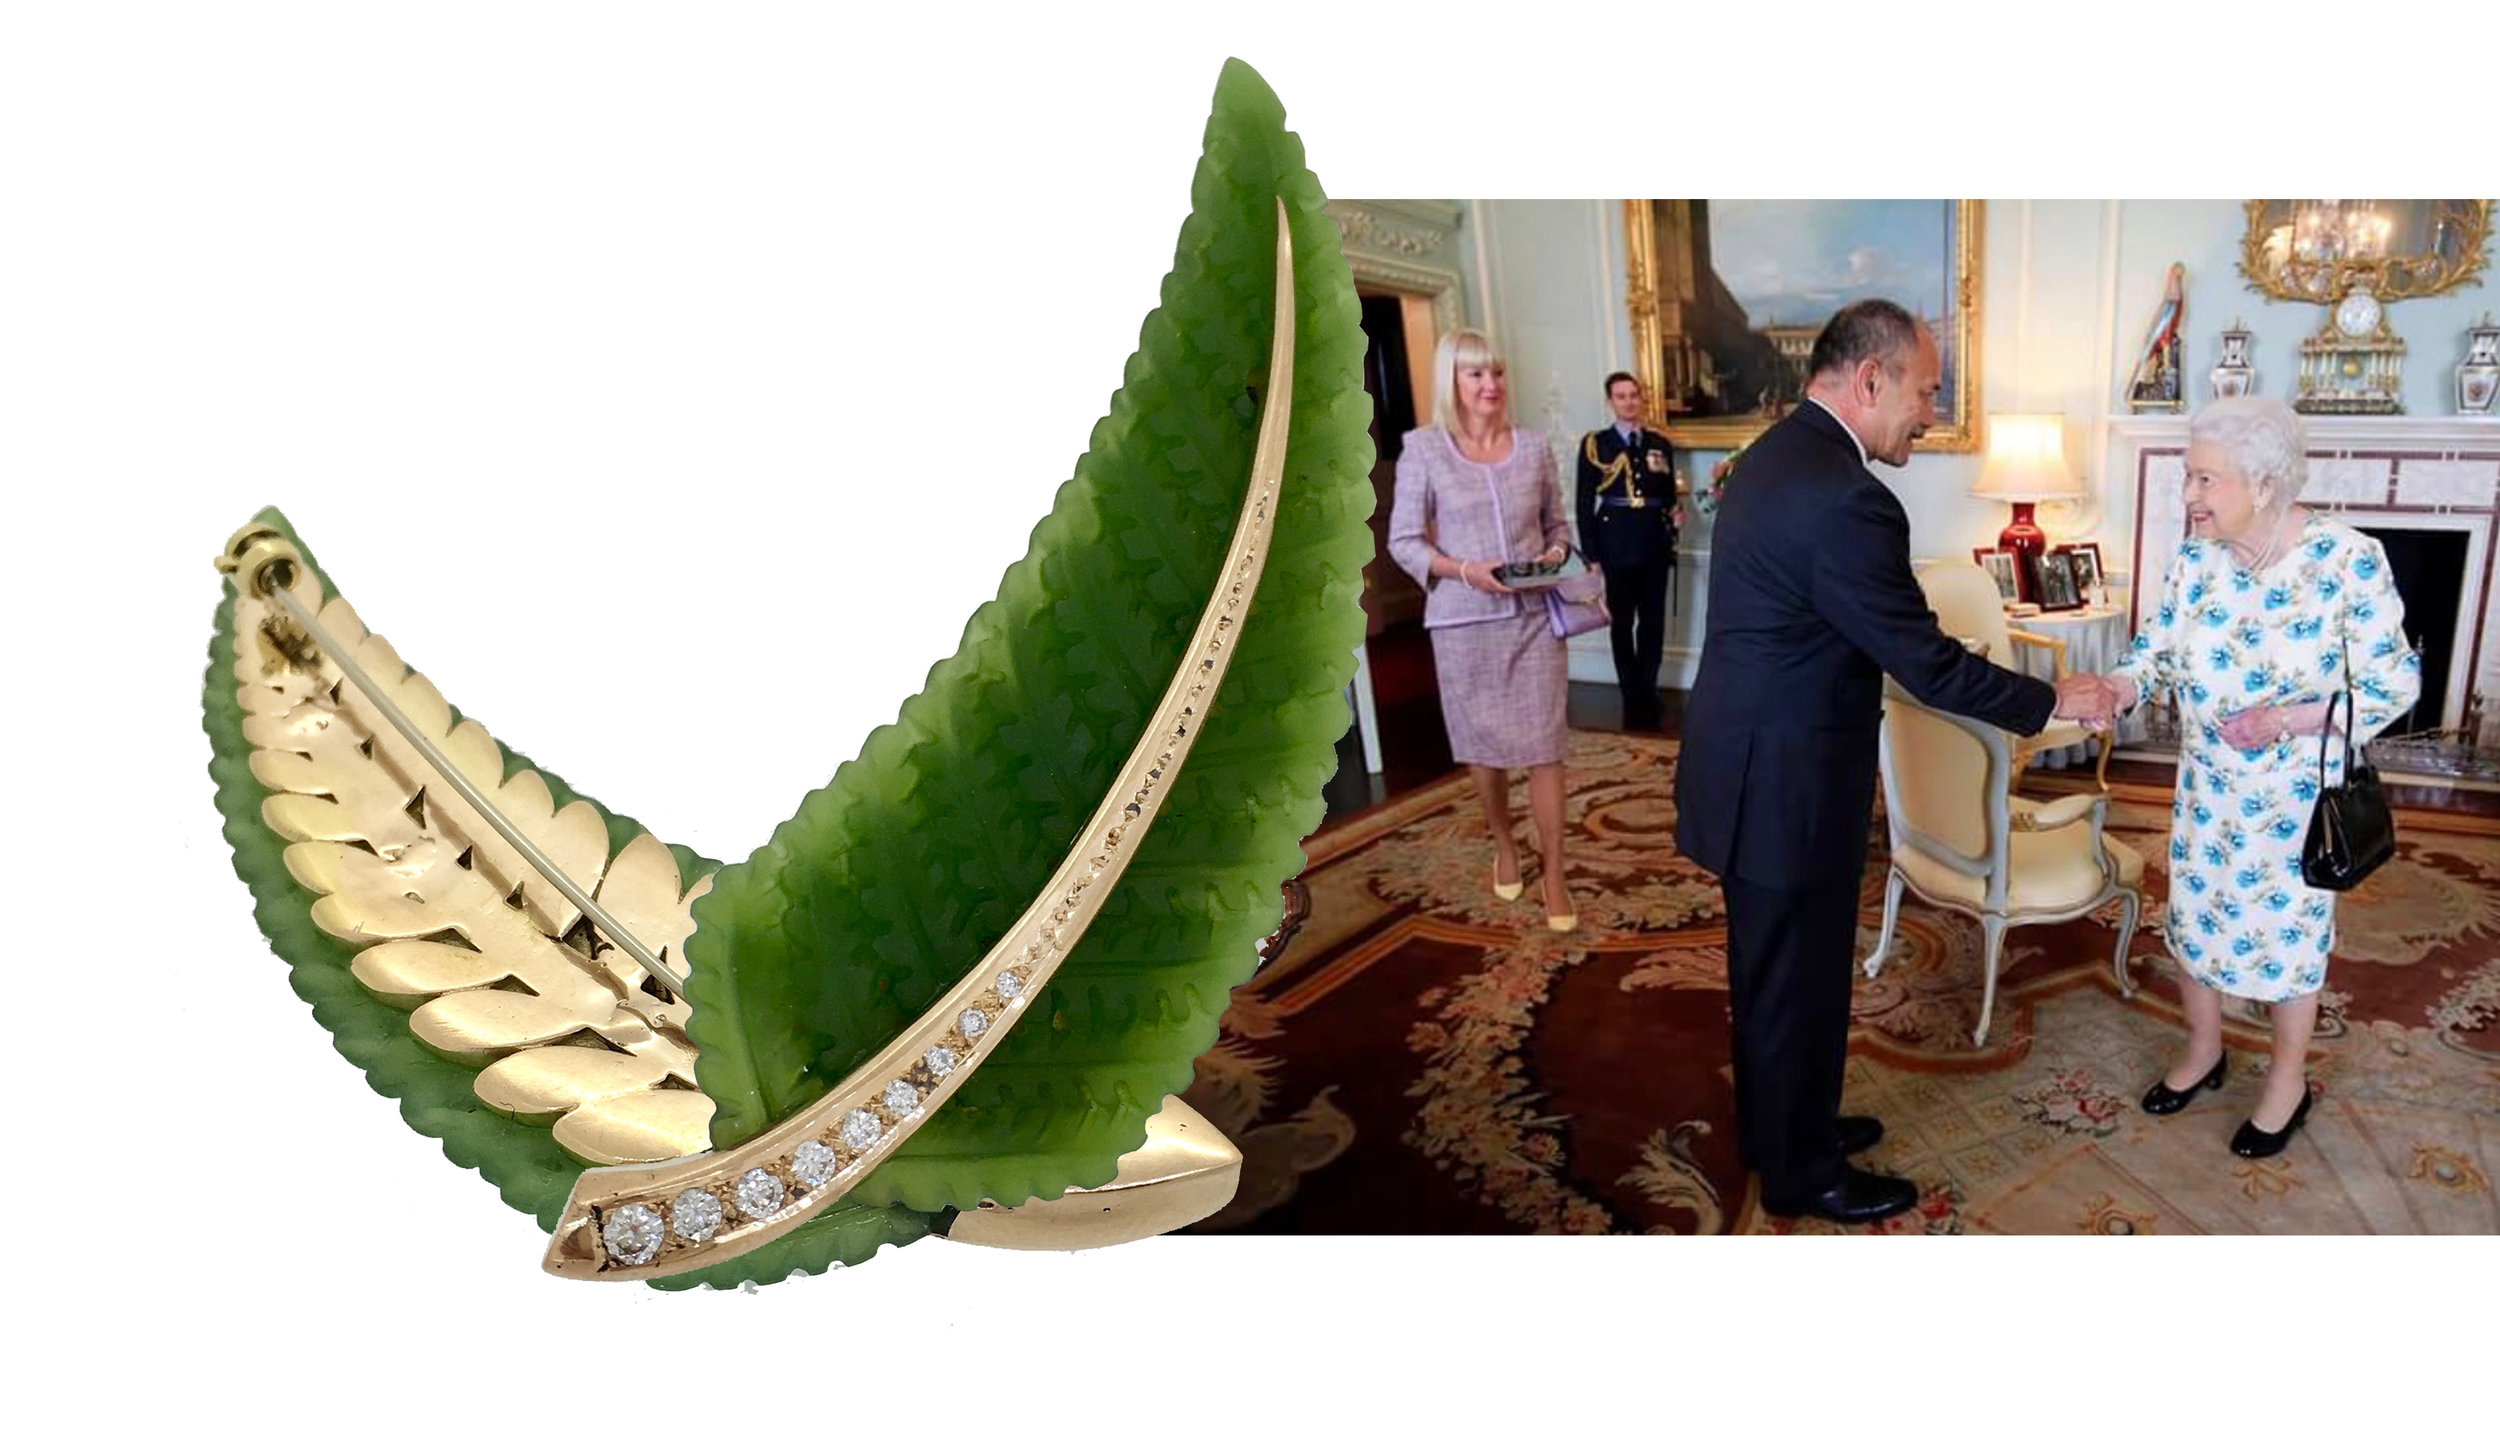 Pictured is the former Governor-General of New Zealand and current High Commissioner of New Zealand to the United Kingdom, His Excellency Sir Jerry Mateparae and Lady Janine Mataparae meeting her Majesty Queen Elizabeth II and presenting her with the brooch.